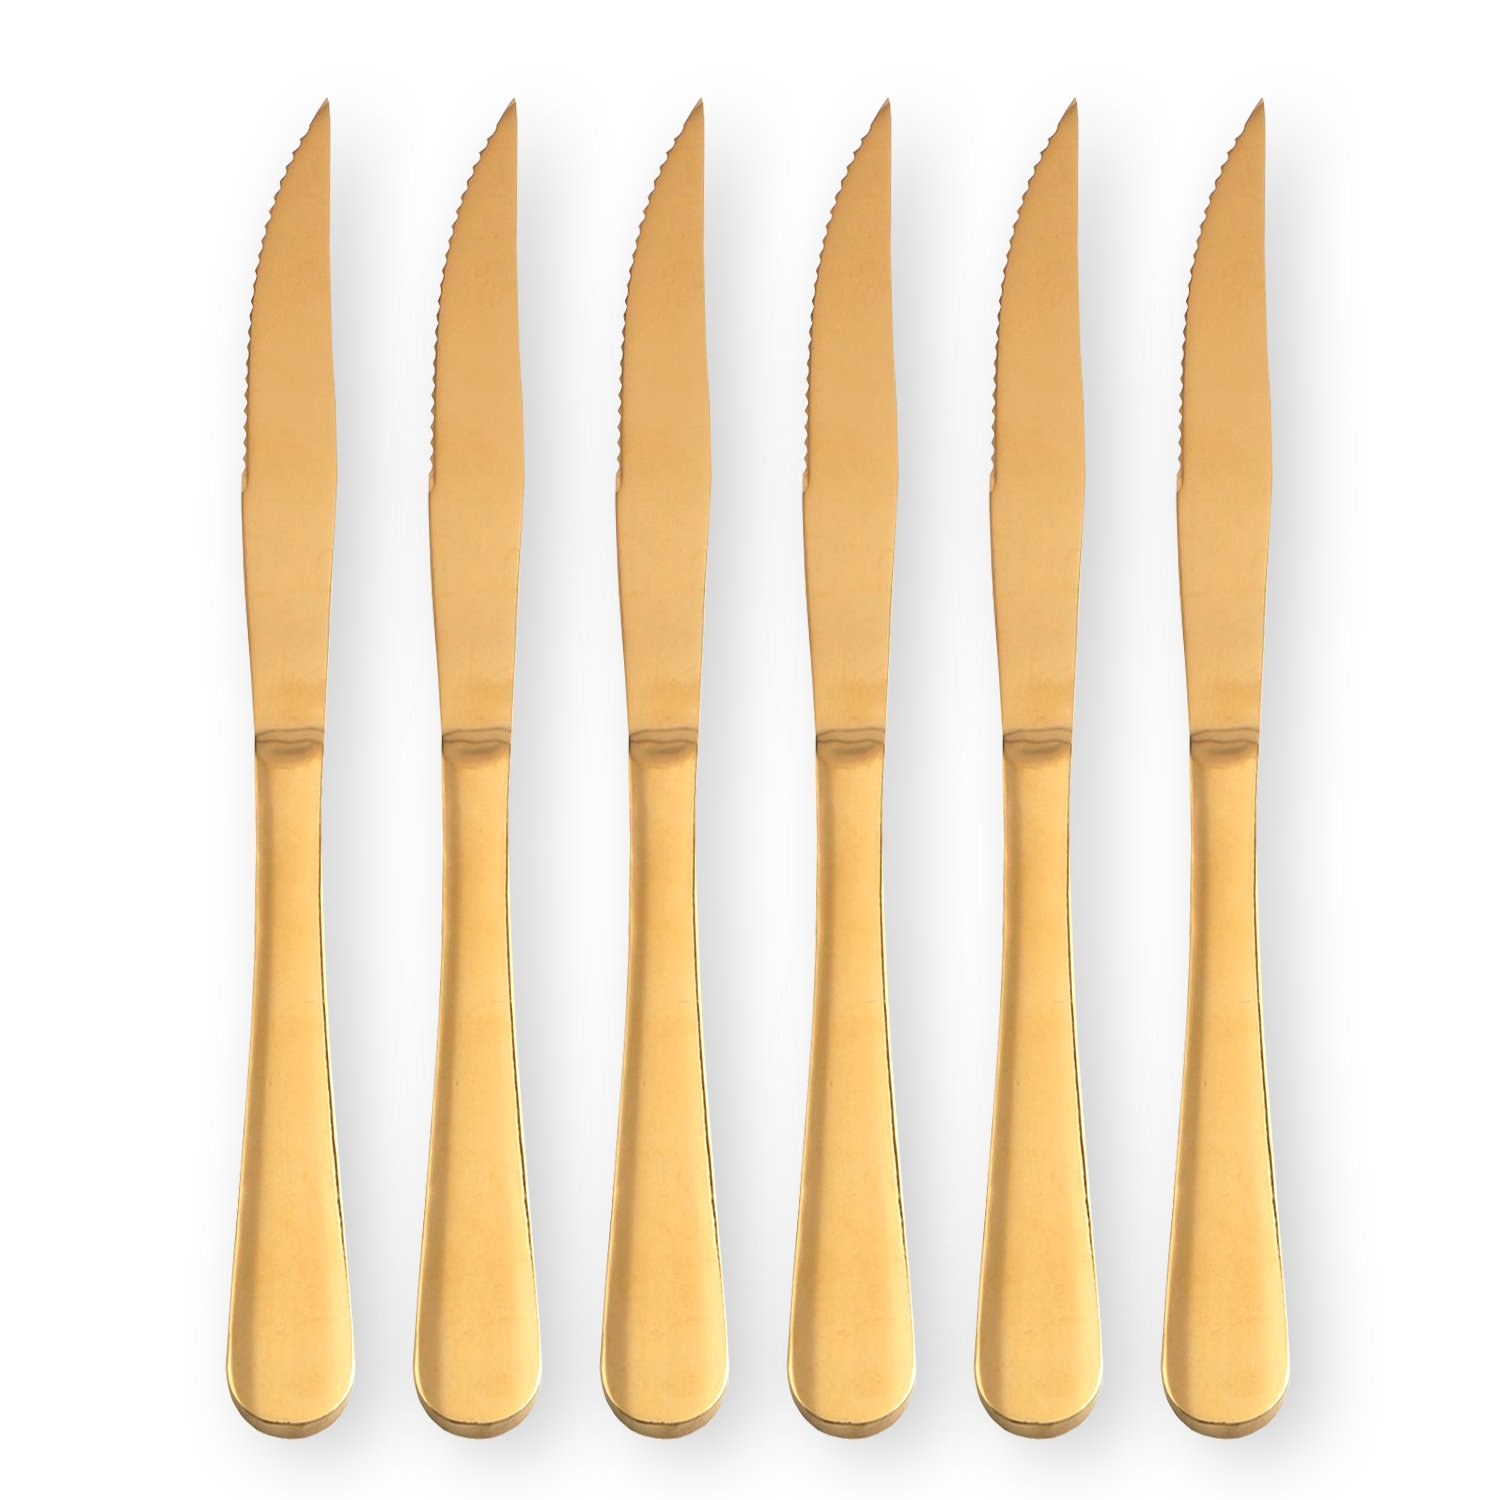 Gold Steak Knife Set, Stainless Steel and Durable comfortable grip handle, for Pizza or Steak (Pack of 6)